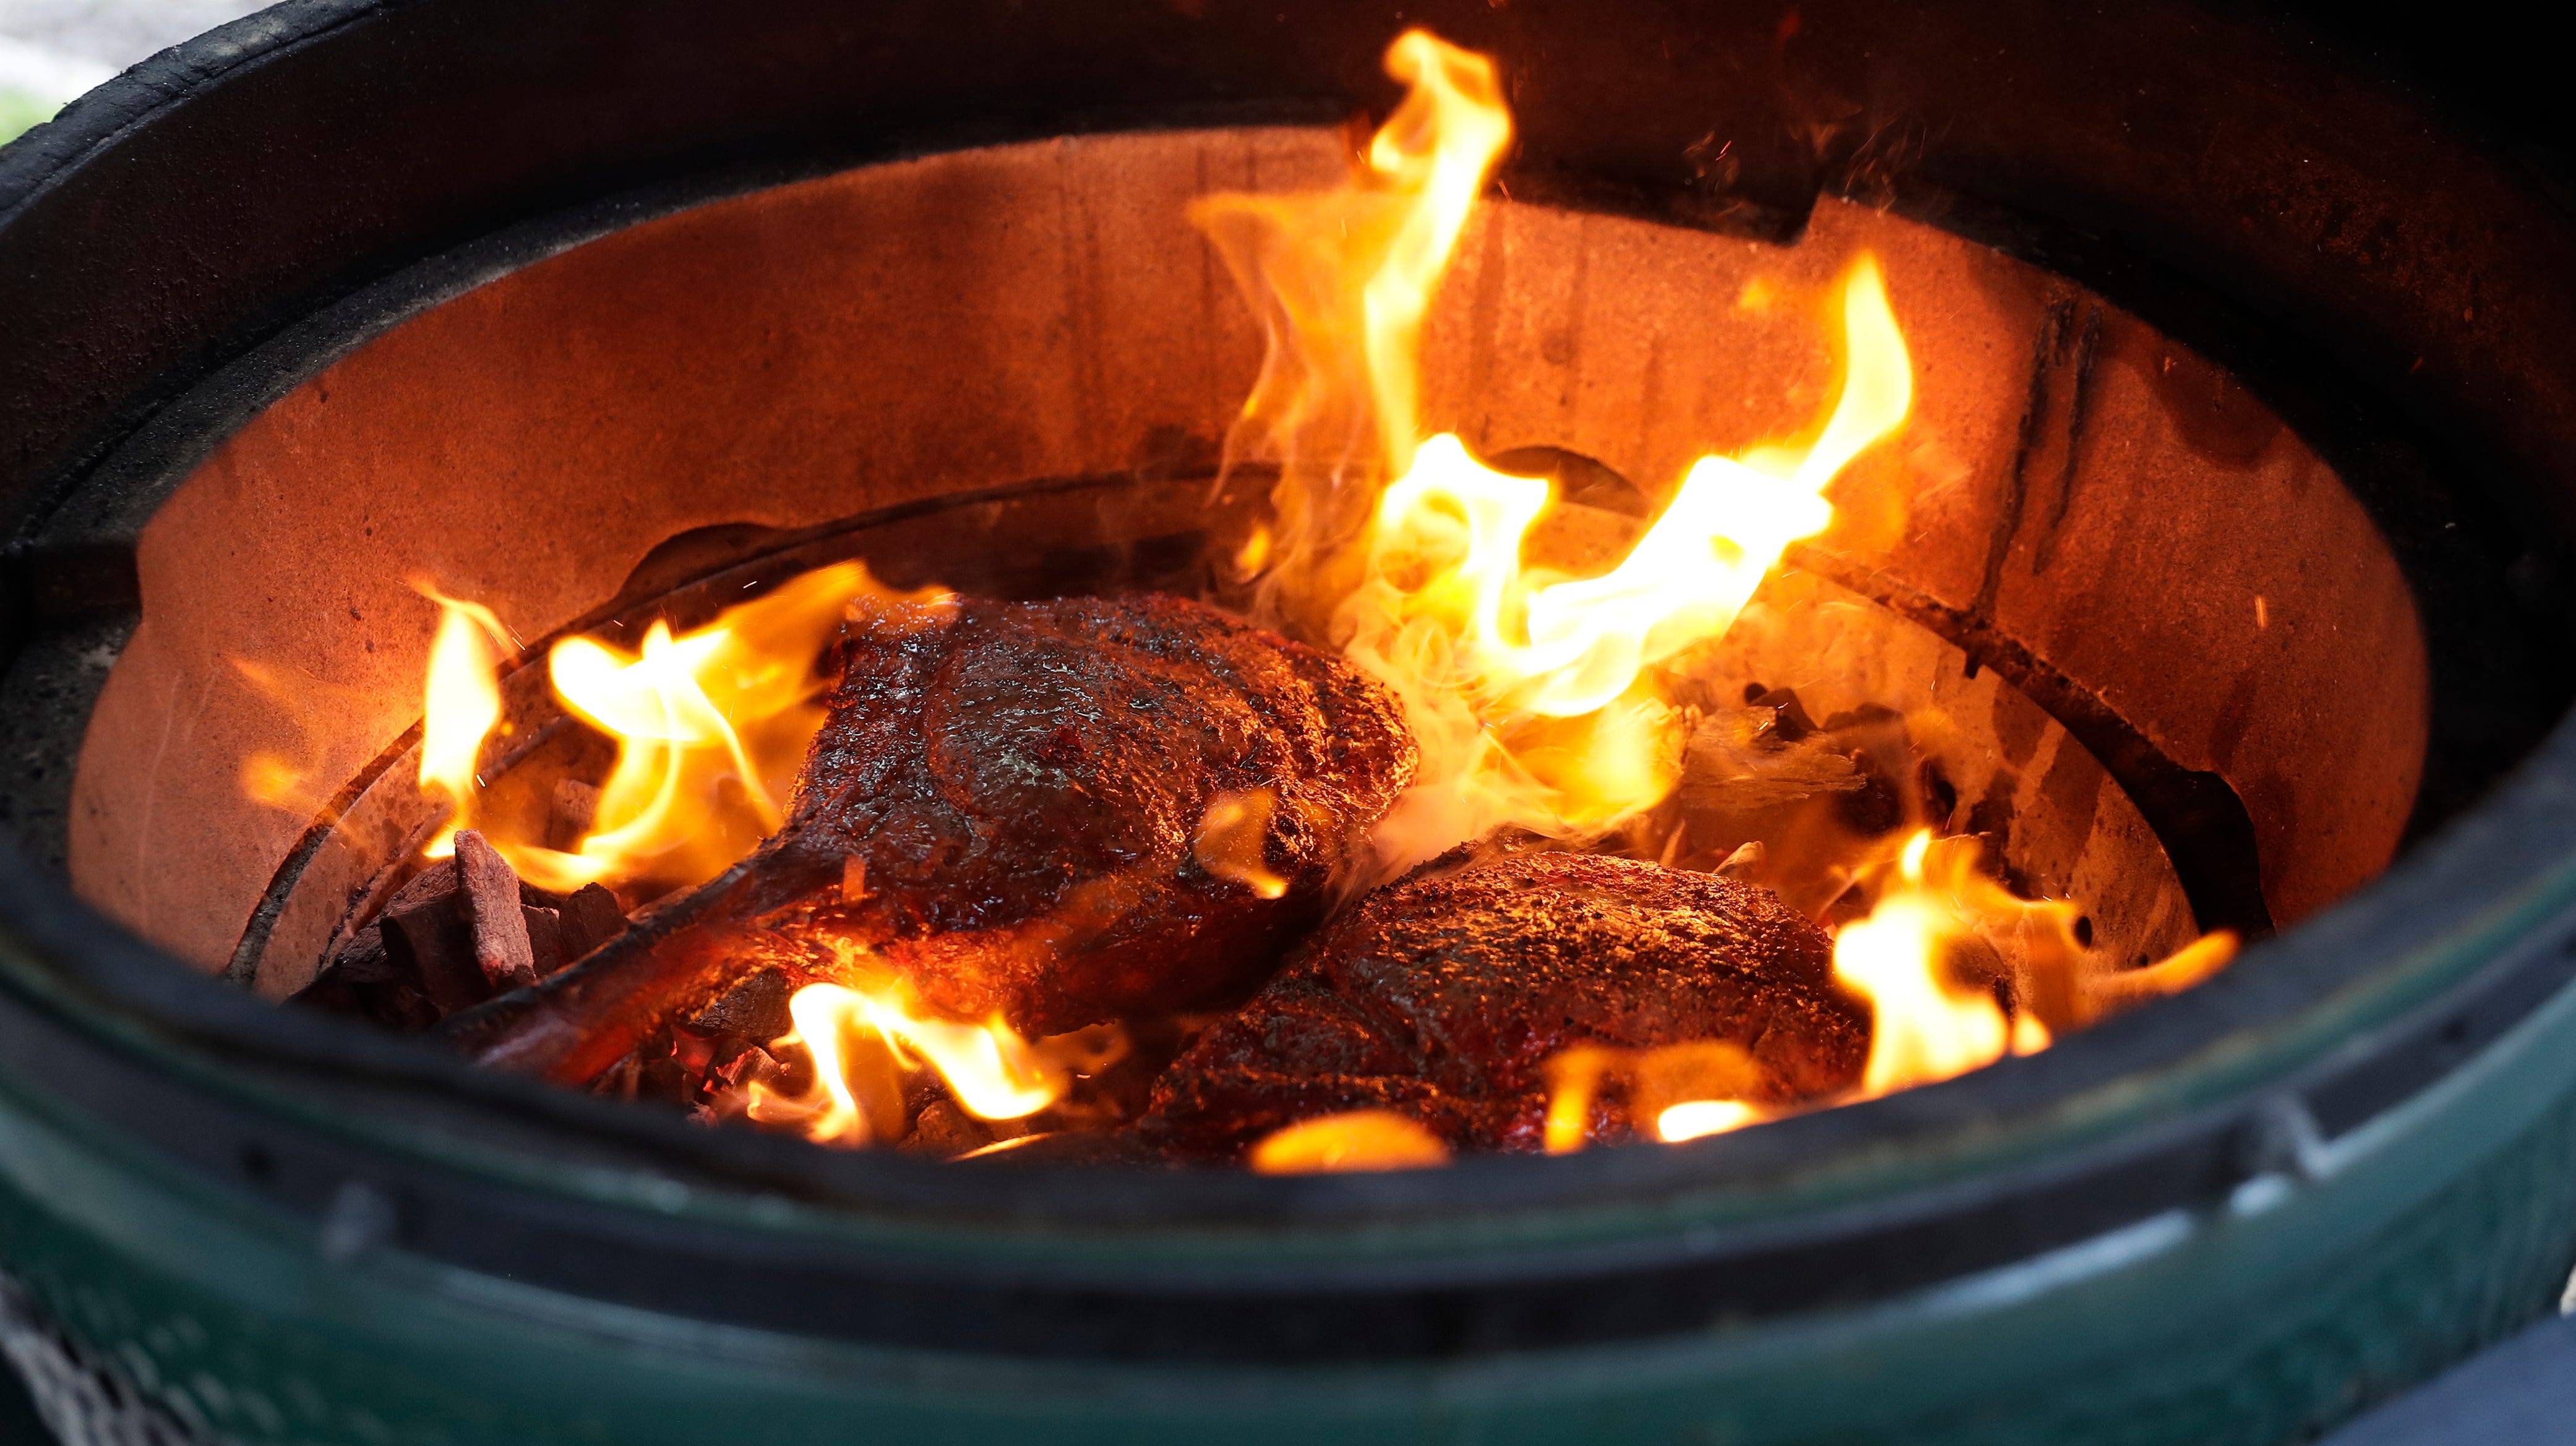 Tossing steaks on a hot bed of coals is one of Schemm's favorite grilling methods.